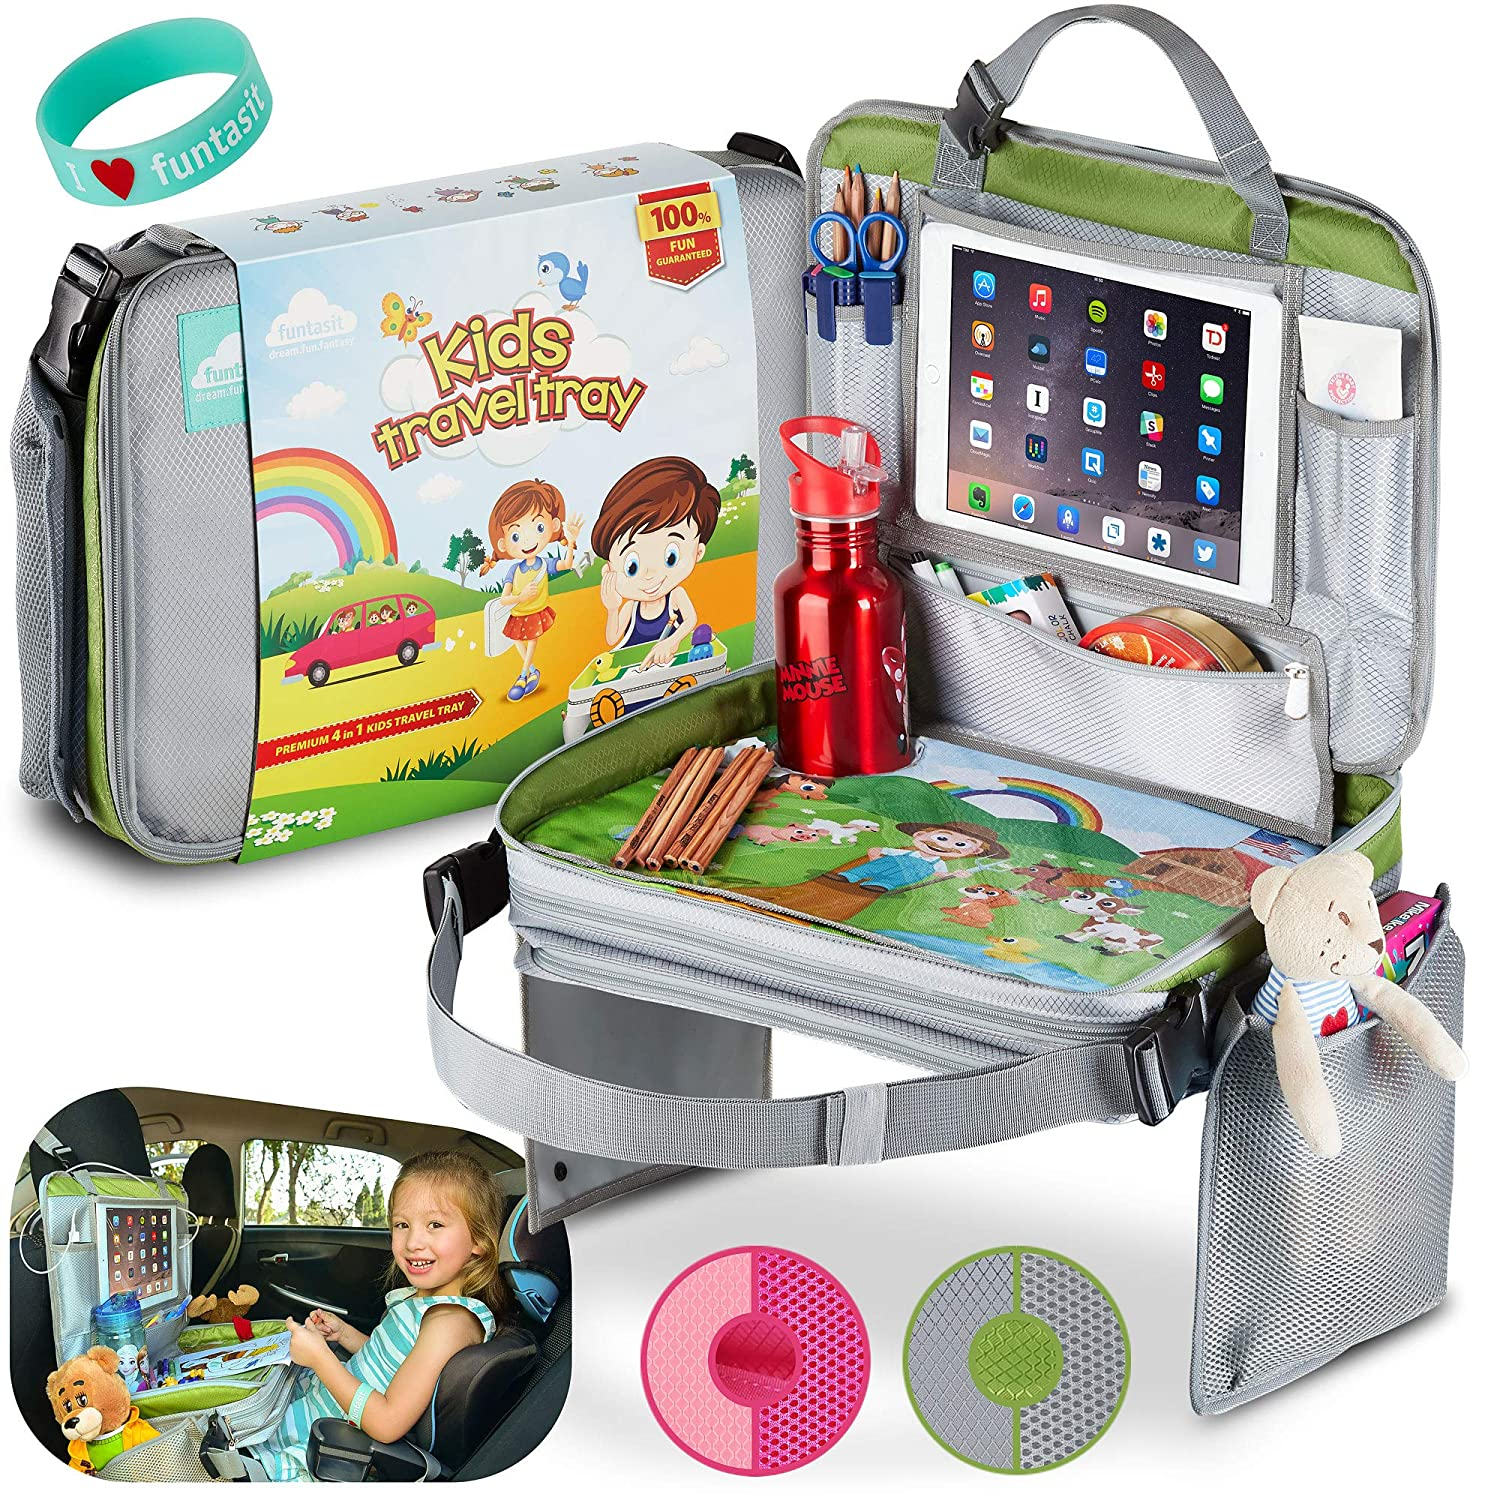 travel tray for car seats